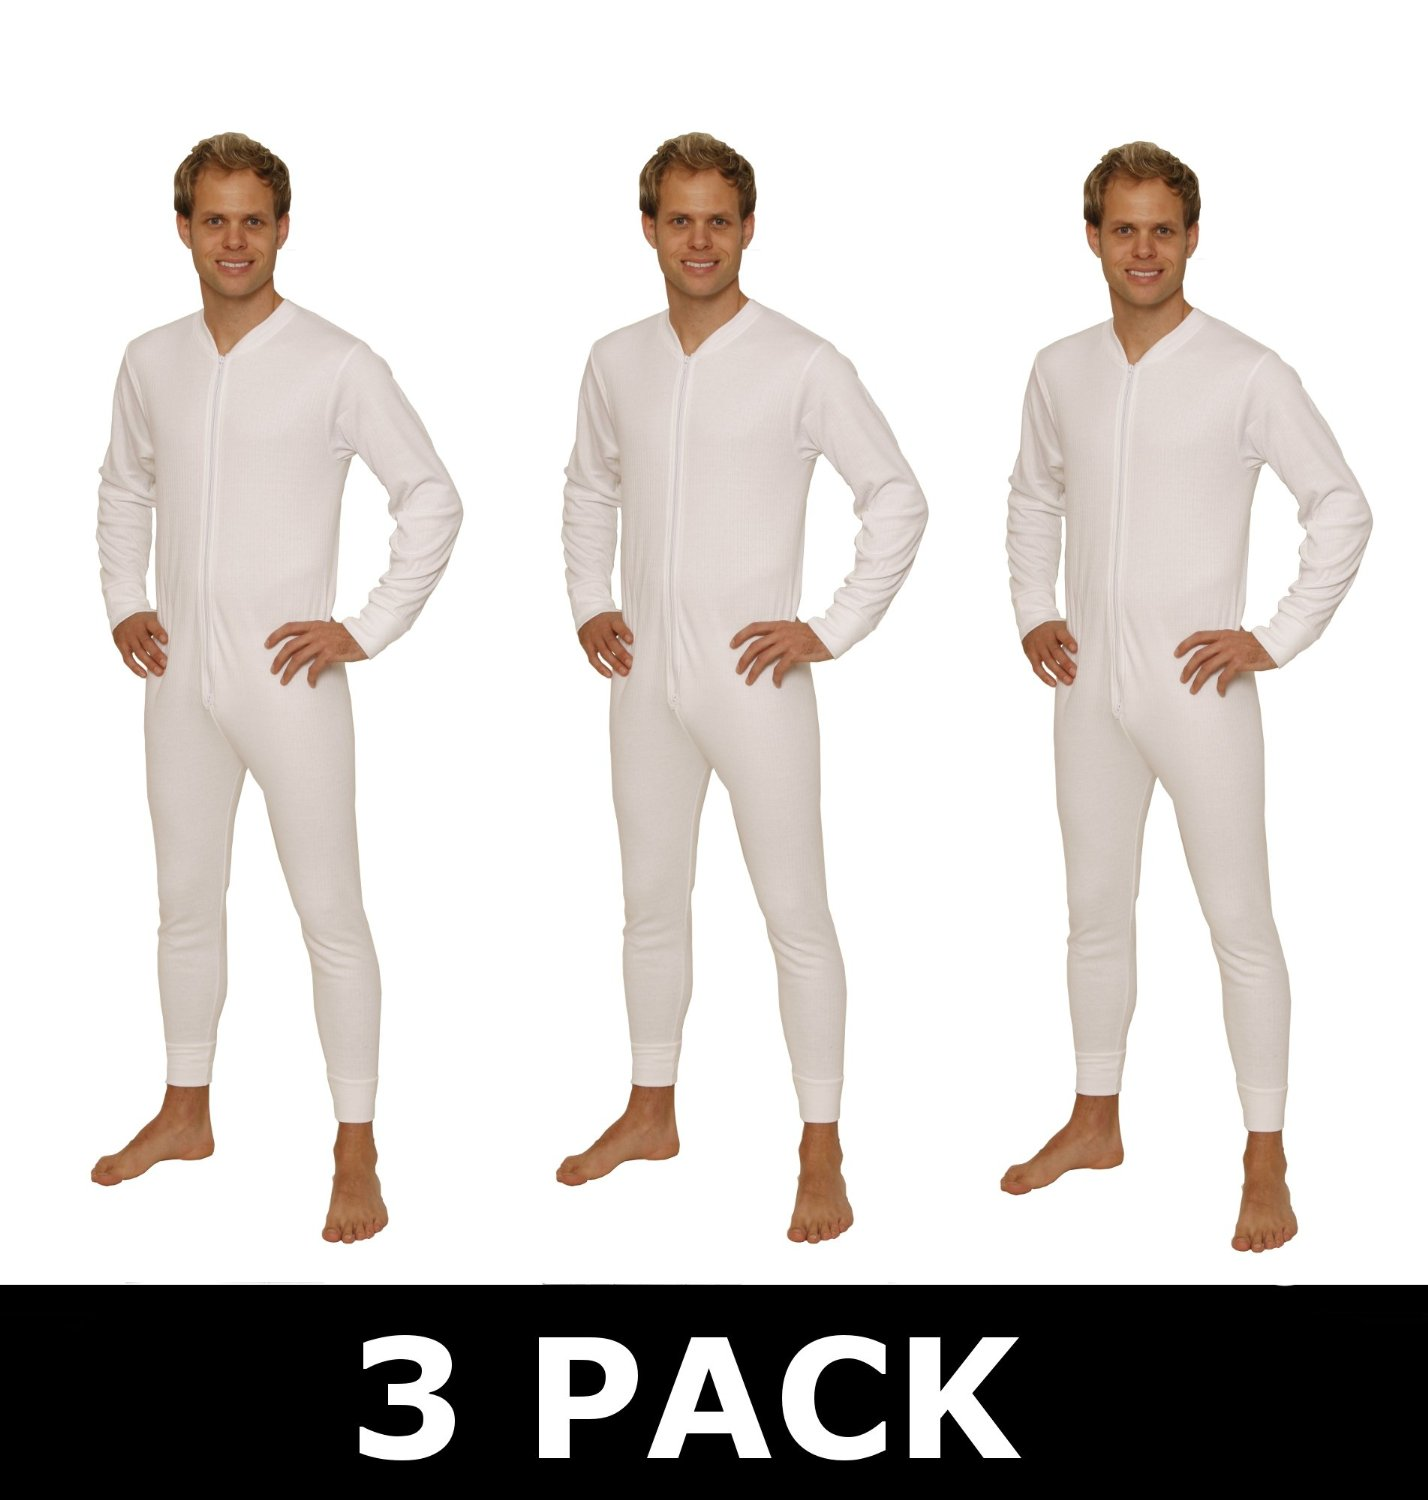 Octave 3 Pack Mens All In One Thermal Union Suit With